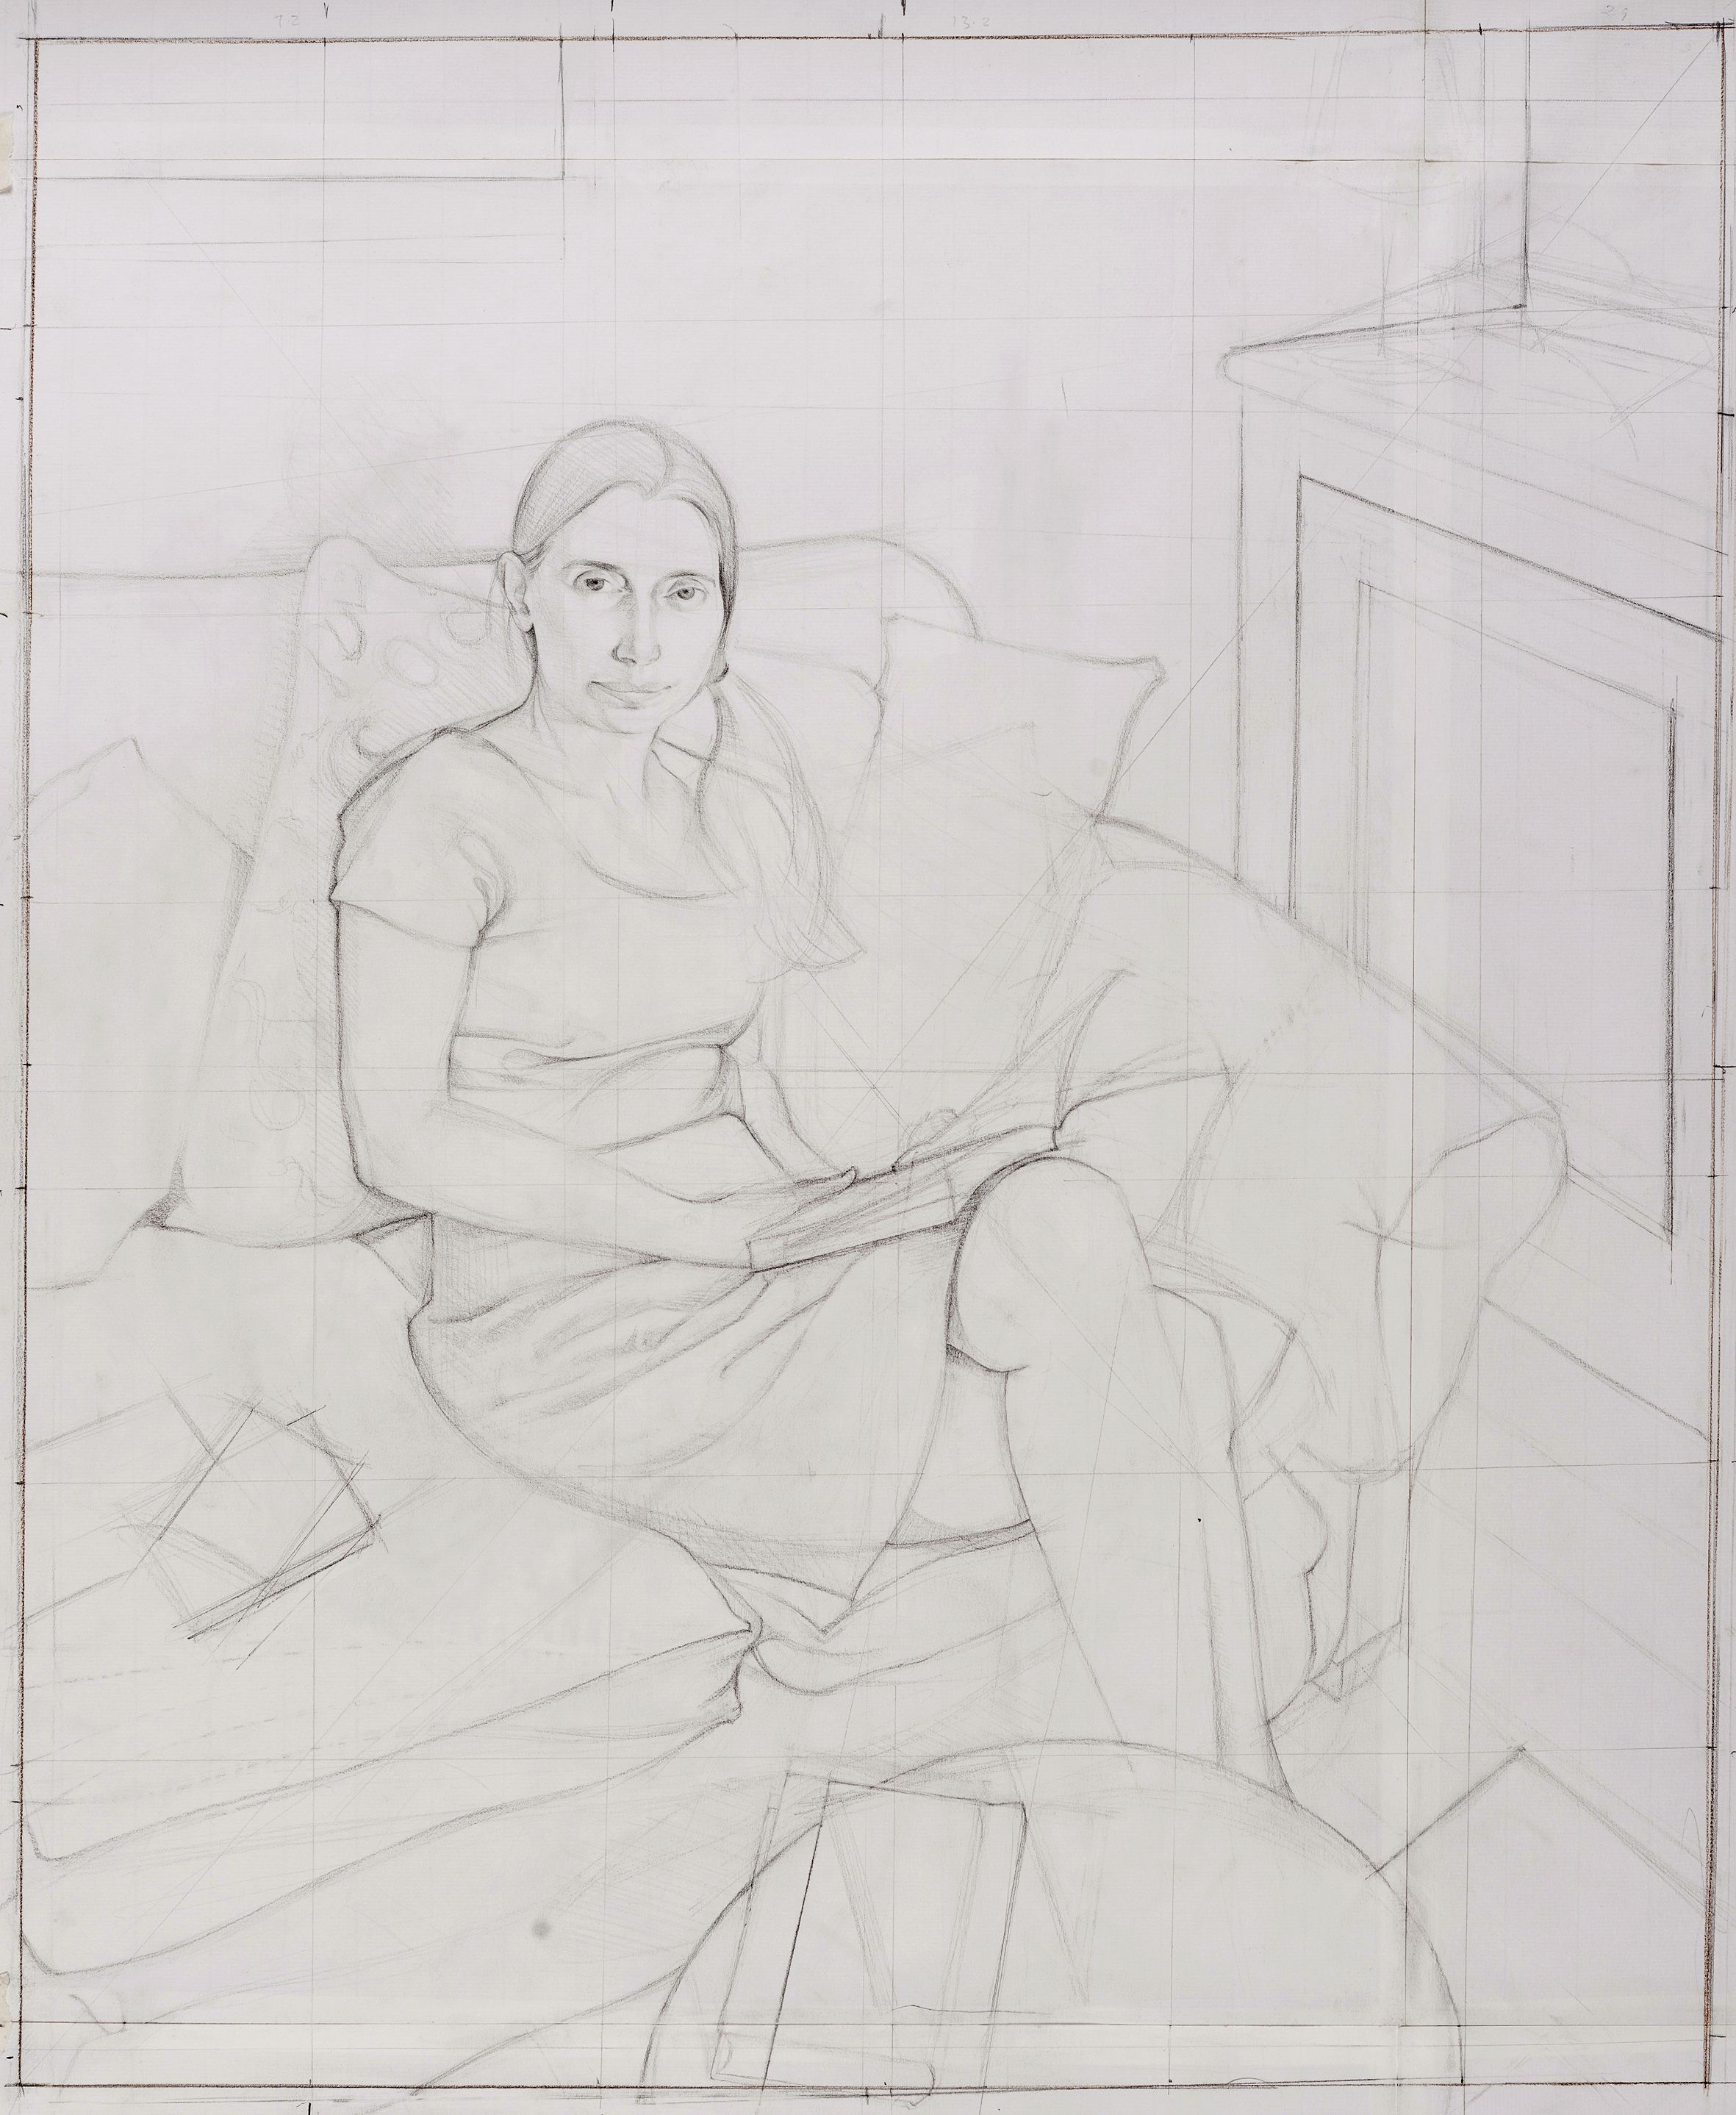 'Study for portrait of Sophie Holdforth' pencil on paper 79 x 89 cm